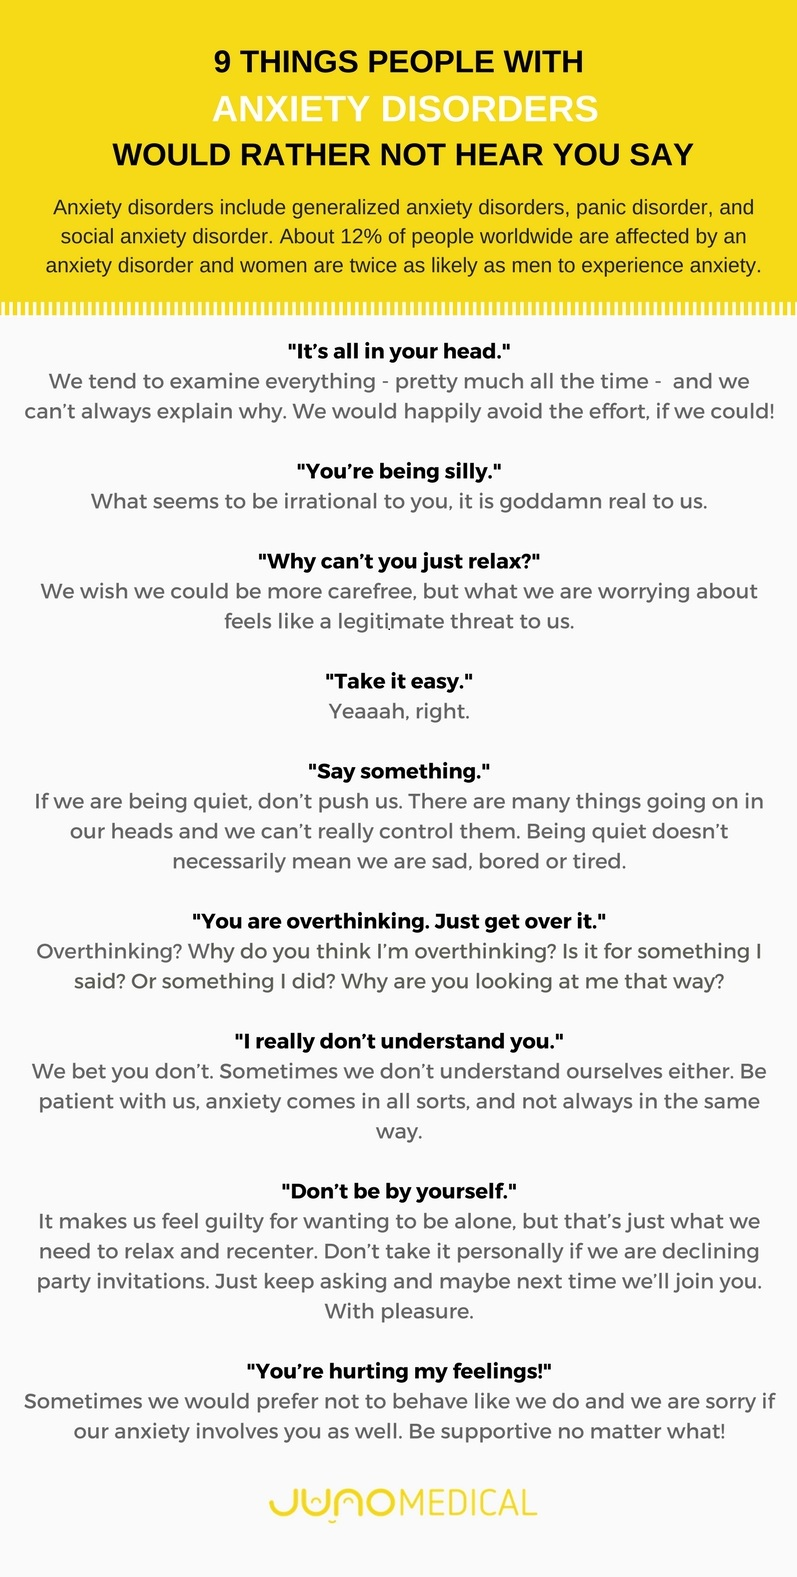 Infographic - 9 Things People with Anxiety Disorders Would Rather Not Hear You Say